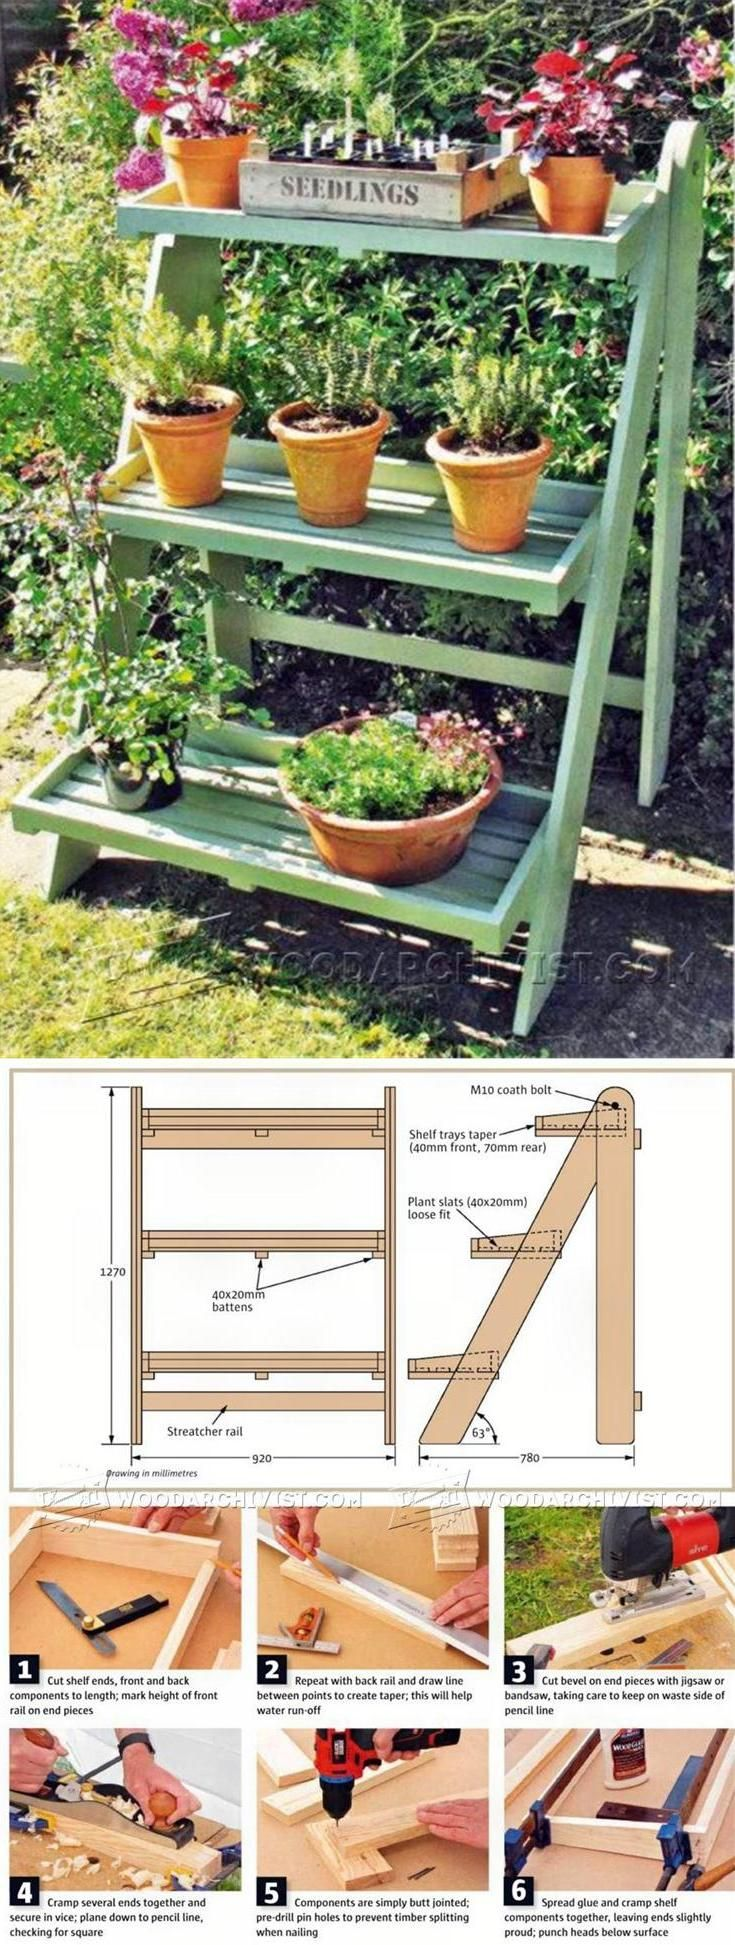 Ladder Planter Plans - Outdoor Plans and Projects | WoodArchivist.com